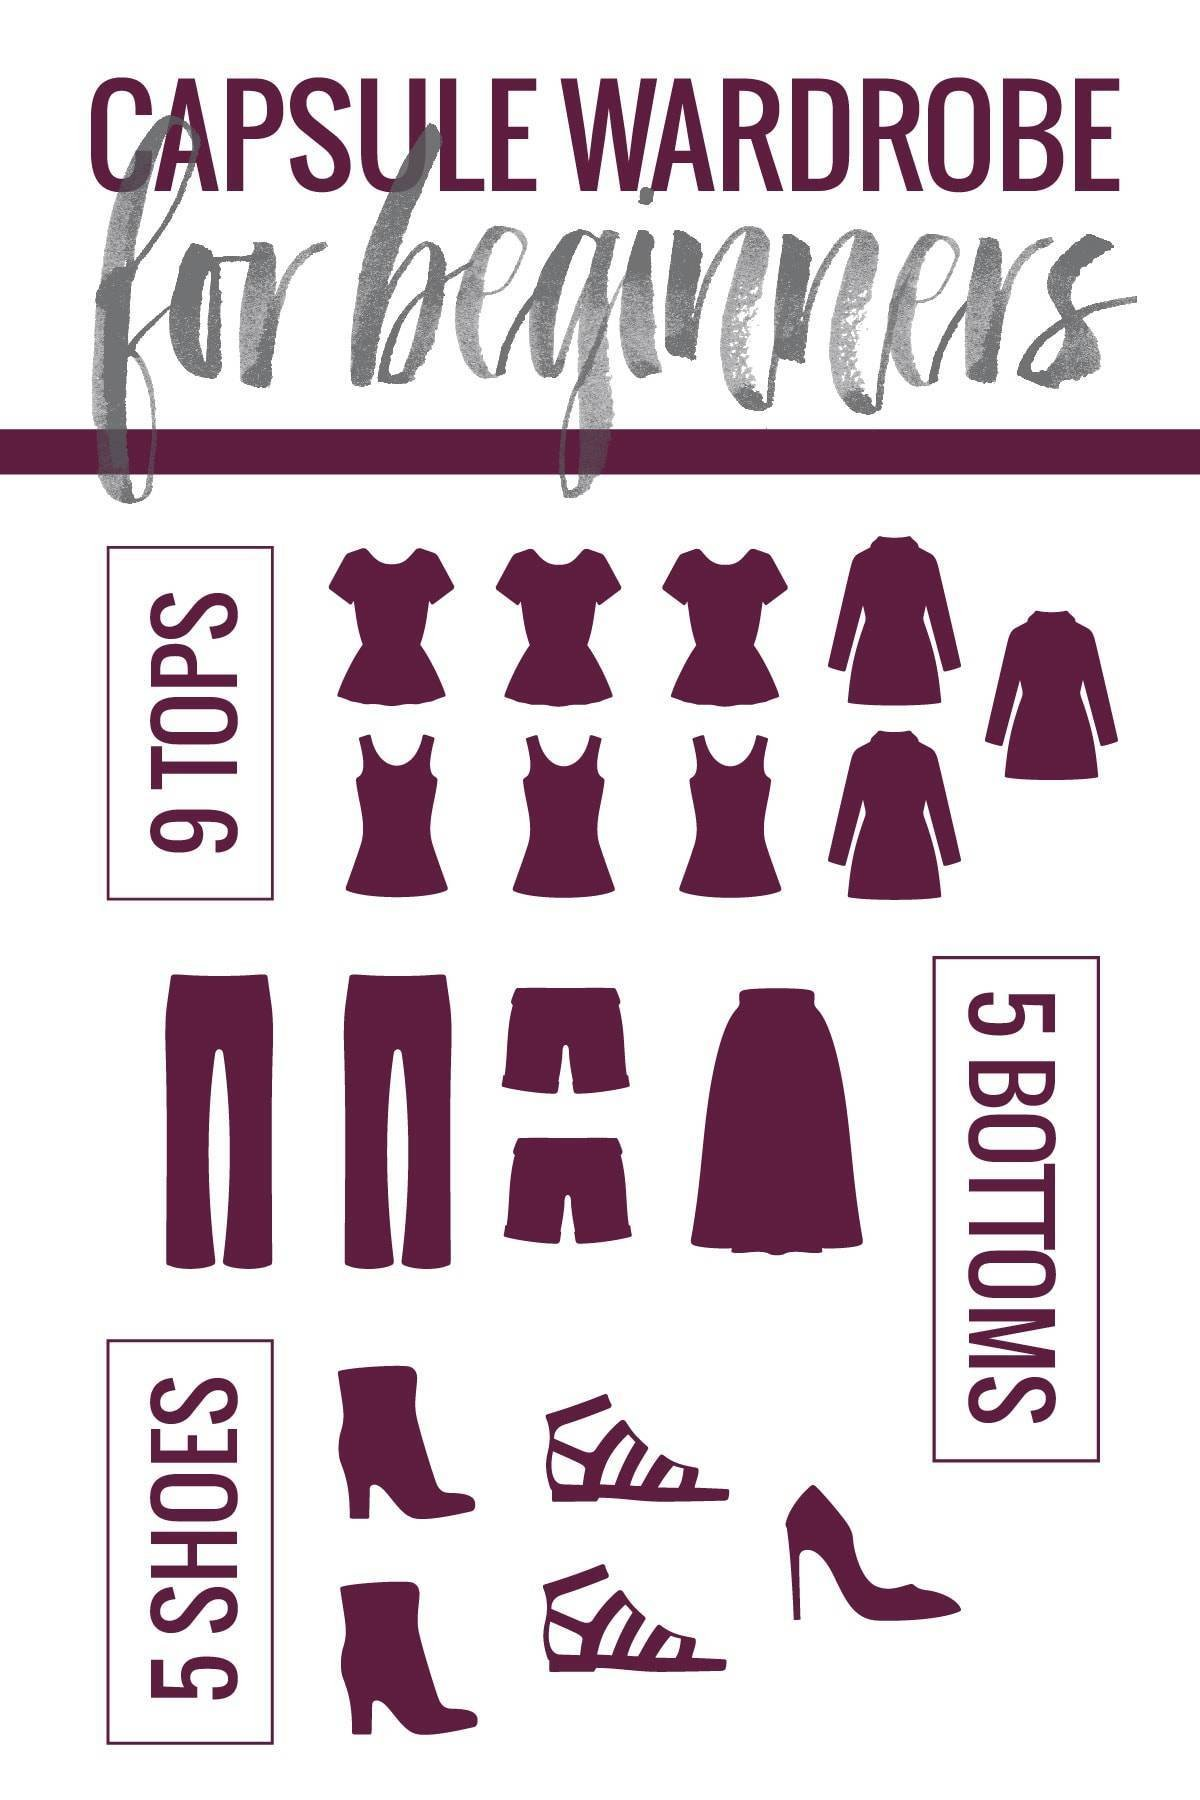 How to start a capsule wardrobe a guide for beginners pinch of yum capsule wardrobe for beginners pronofoot35fo Image collections